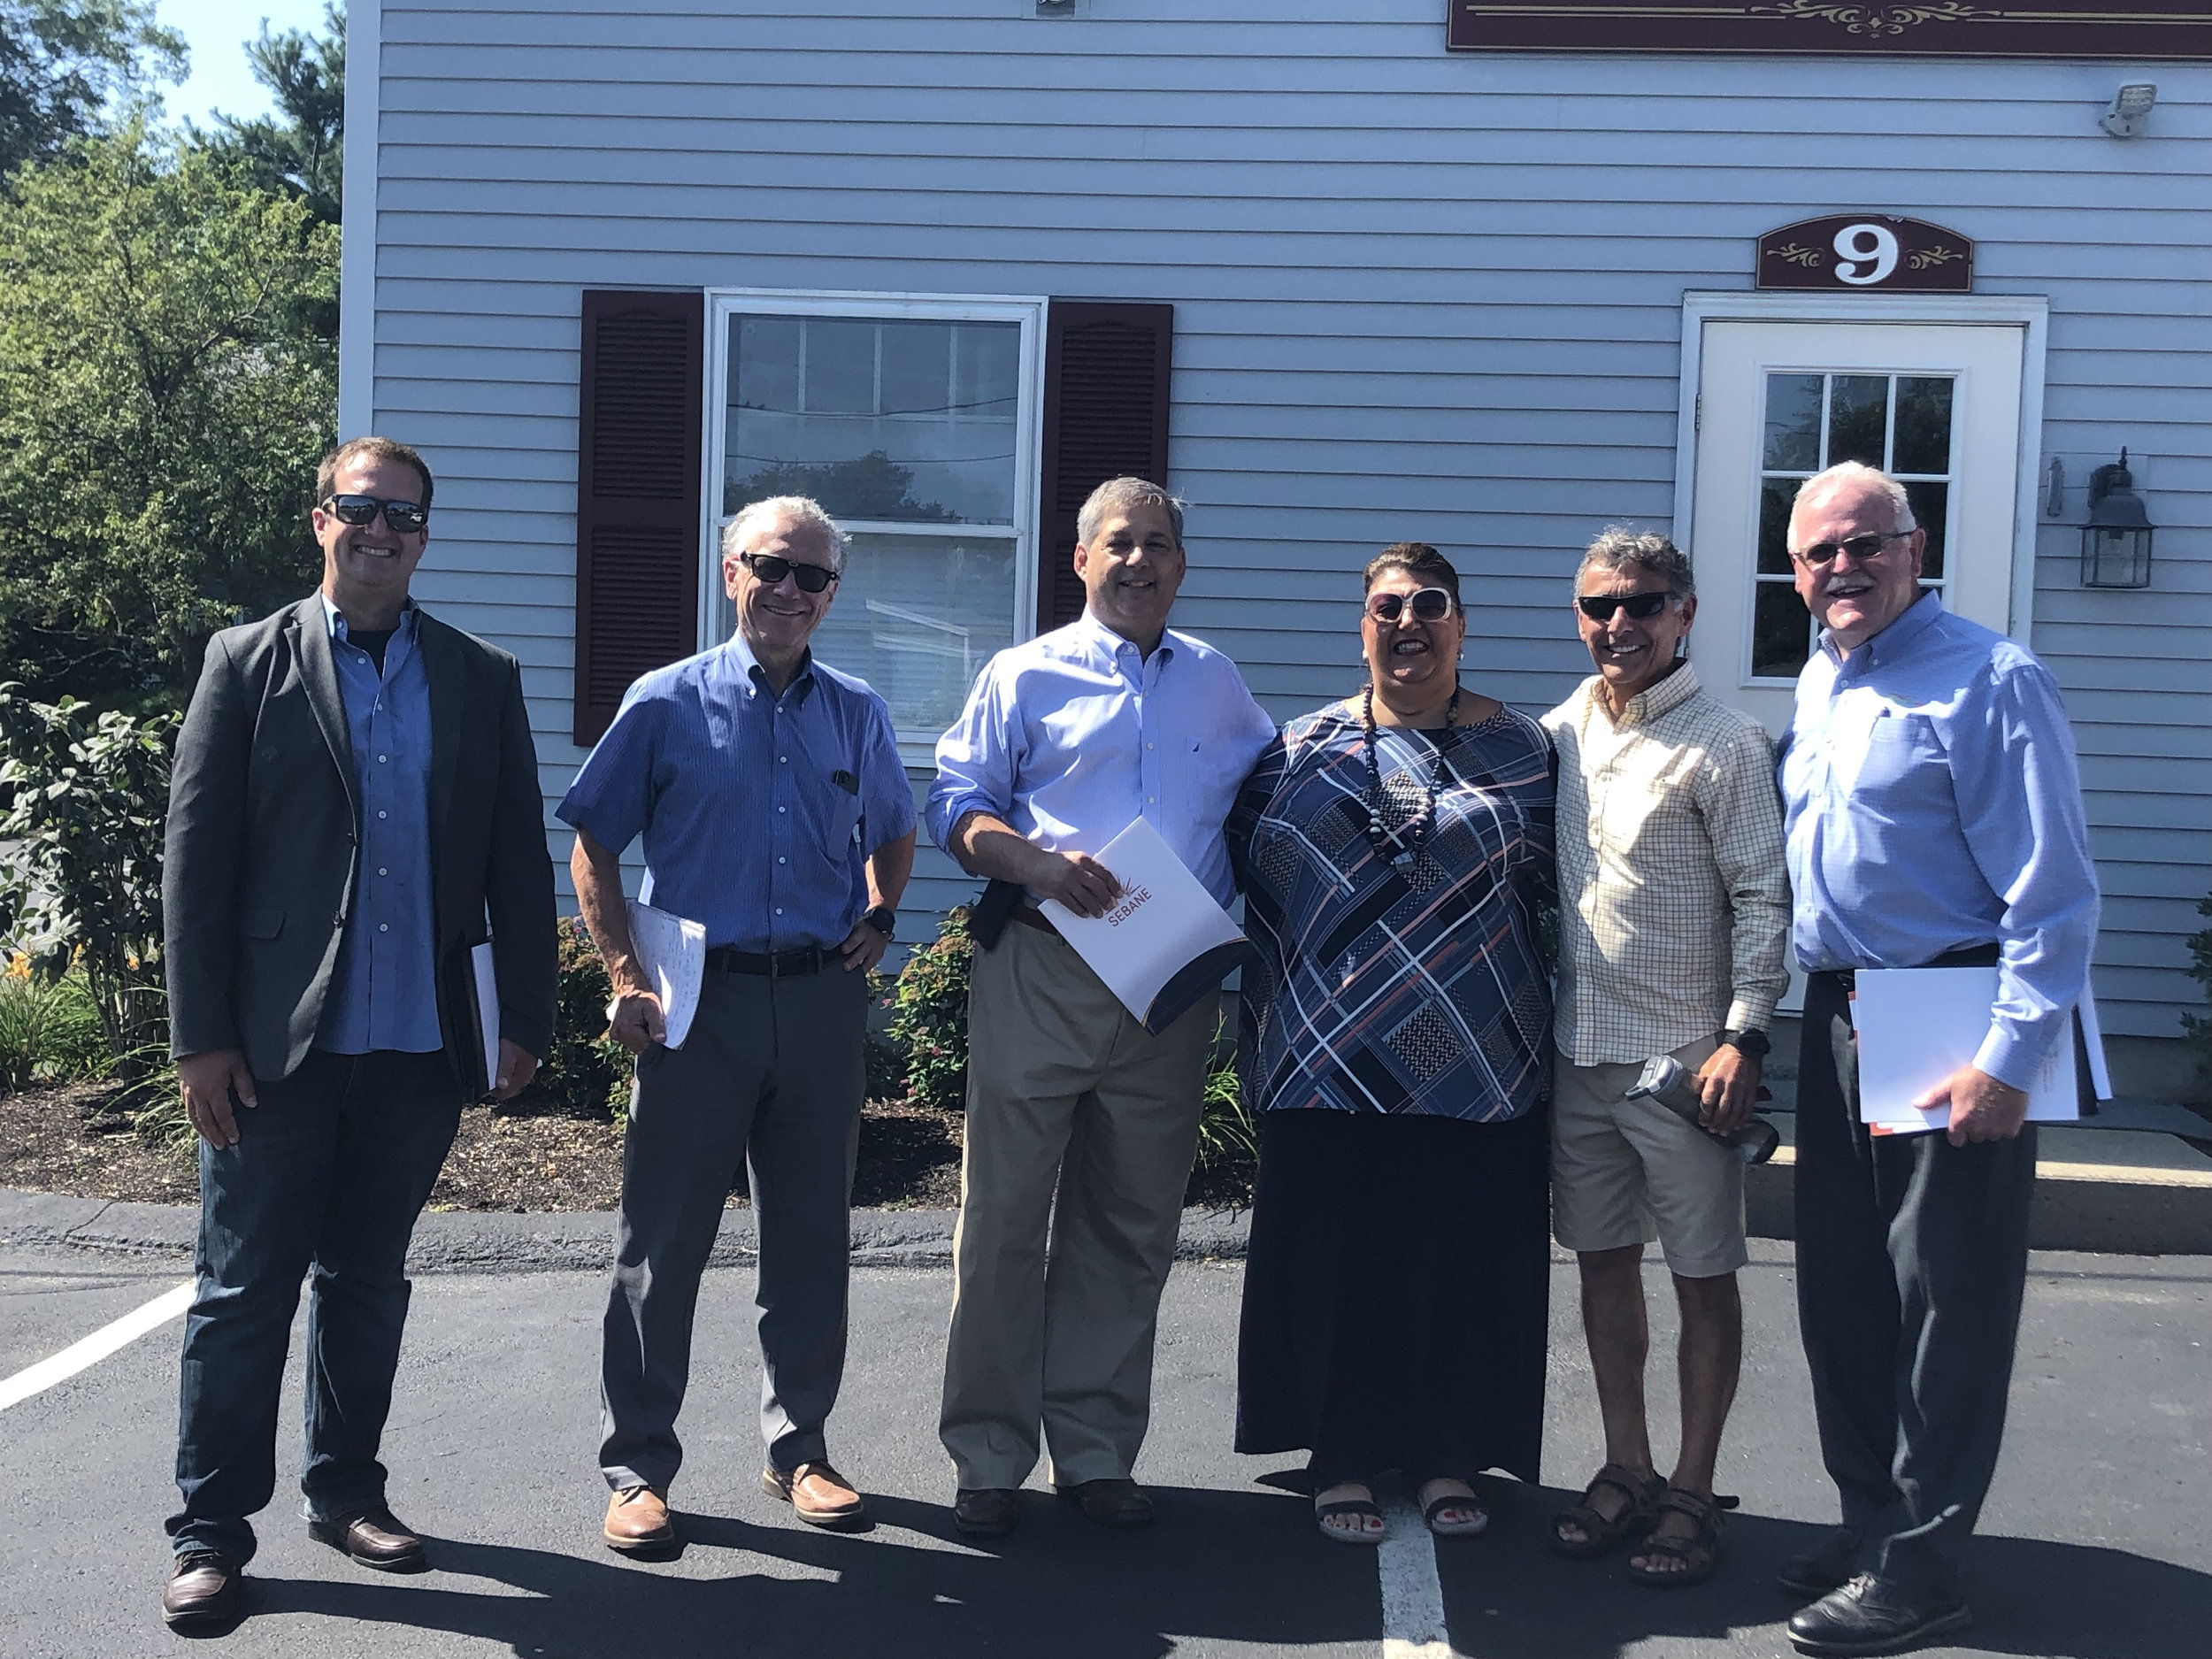 Pictured left to right: James Mazer, ReVision Energy; Eric Krathwohl, SEBANE; Senator Bruce Tarr; Mayor of Gloucester Sefatia Romeo Theken; Peter Vadala, property owner; Tim Sanborn, Cazeault Solar & Home